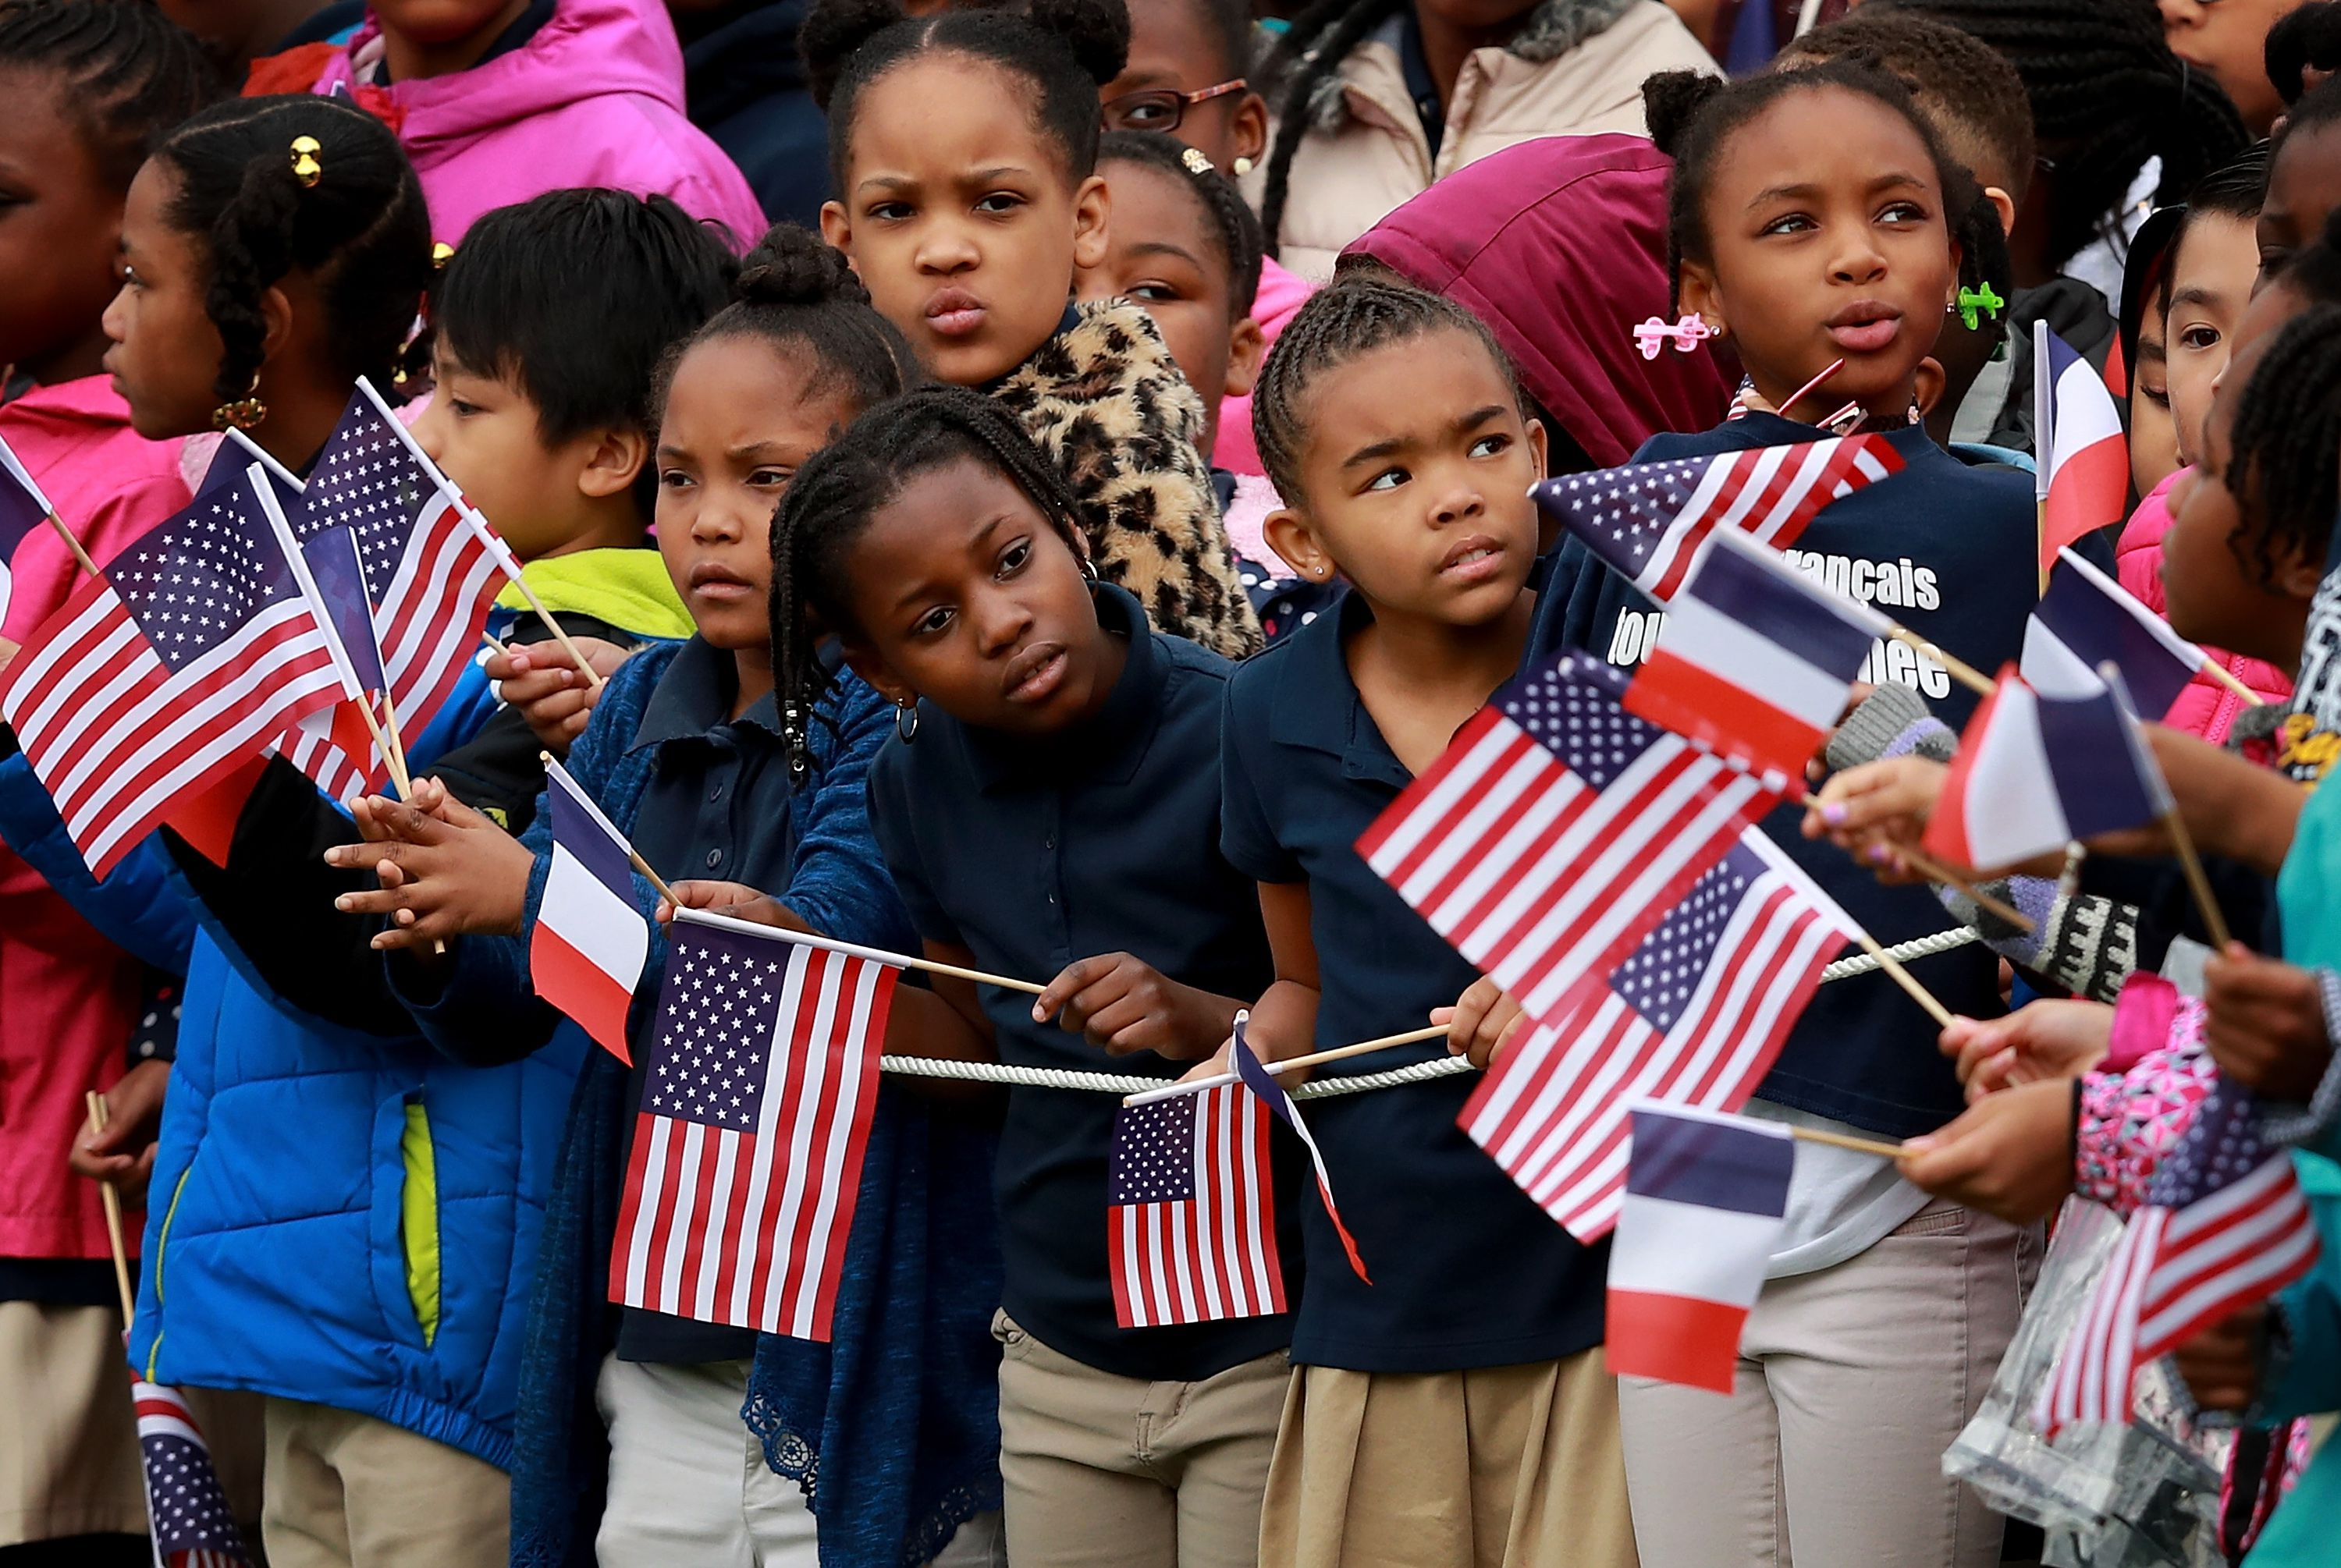 Children waving American flags